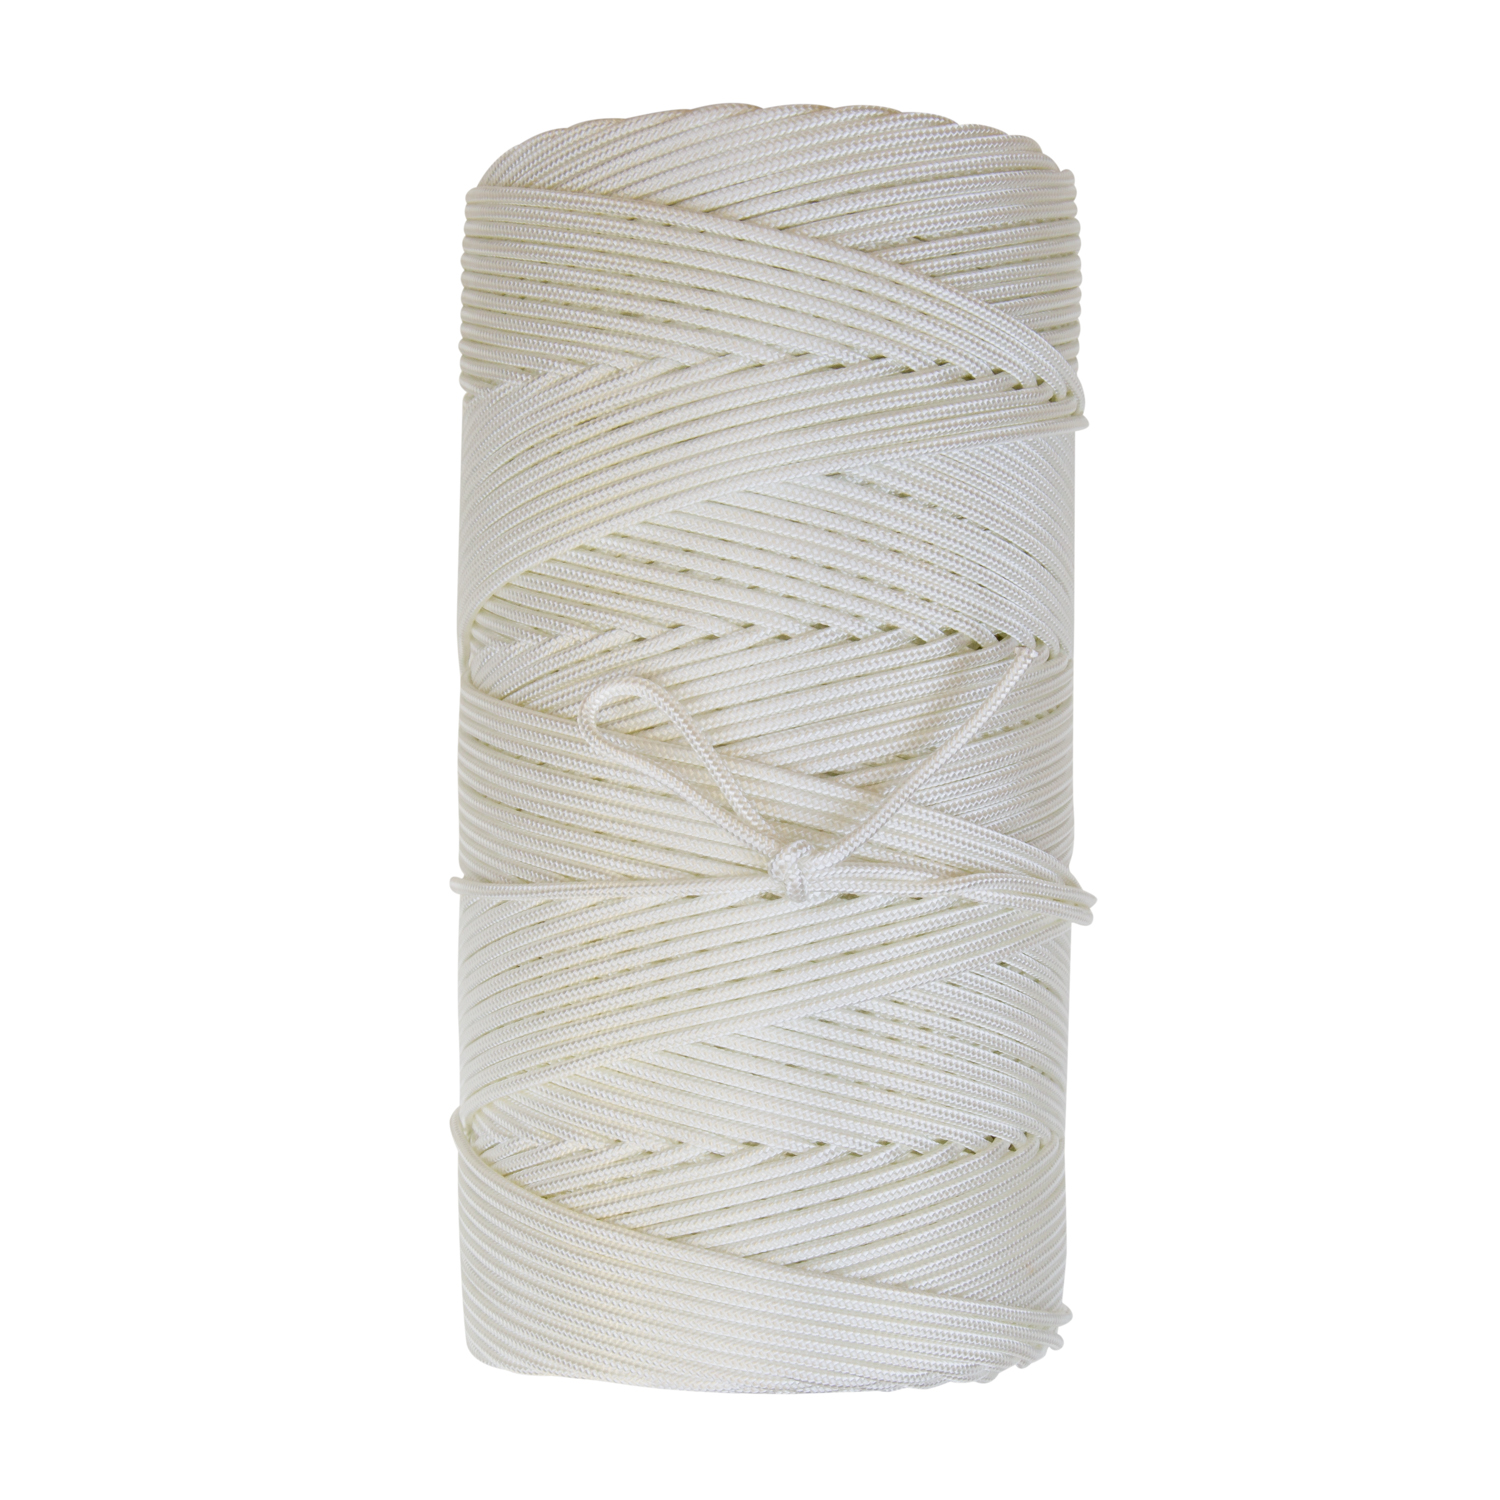 Braided Becket - Constructed of natural white industrial nylon and high tenacity polyester, this 16 carrier round braid is ideally suited for commercial fishing and other applications requiring a medium lay cordage.